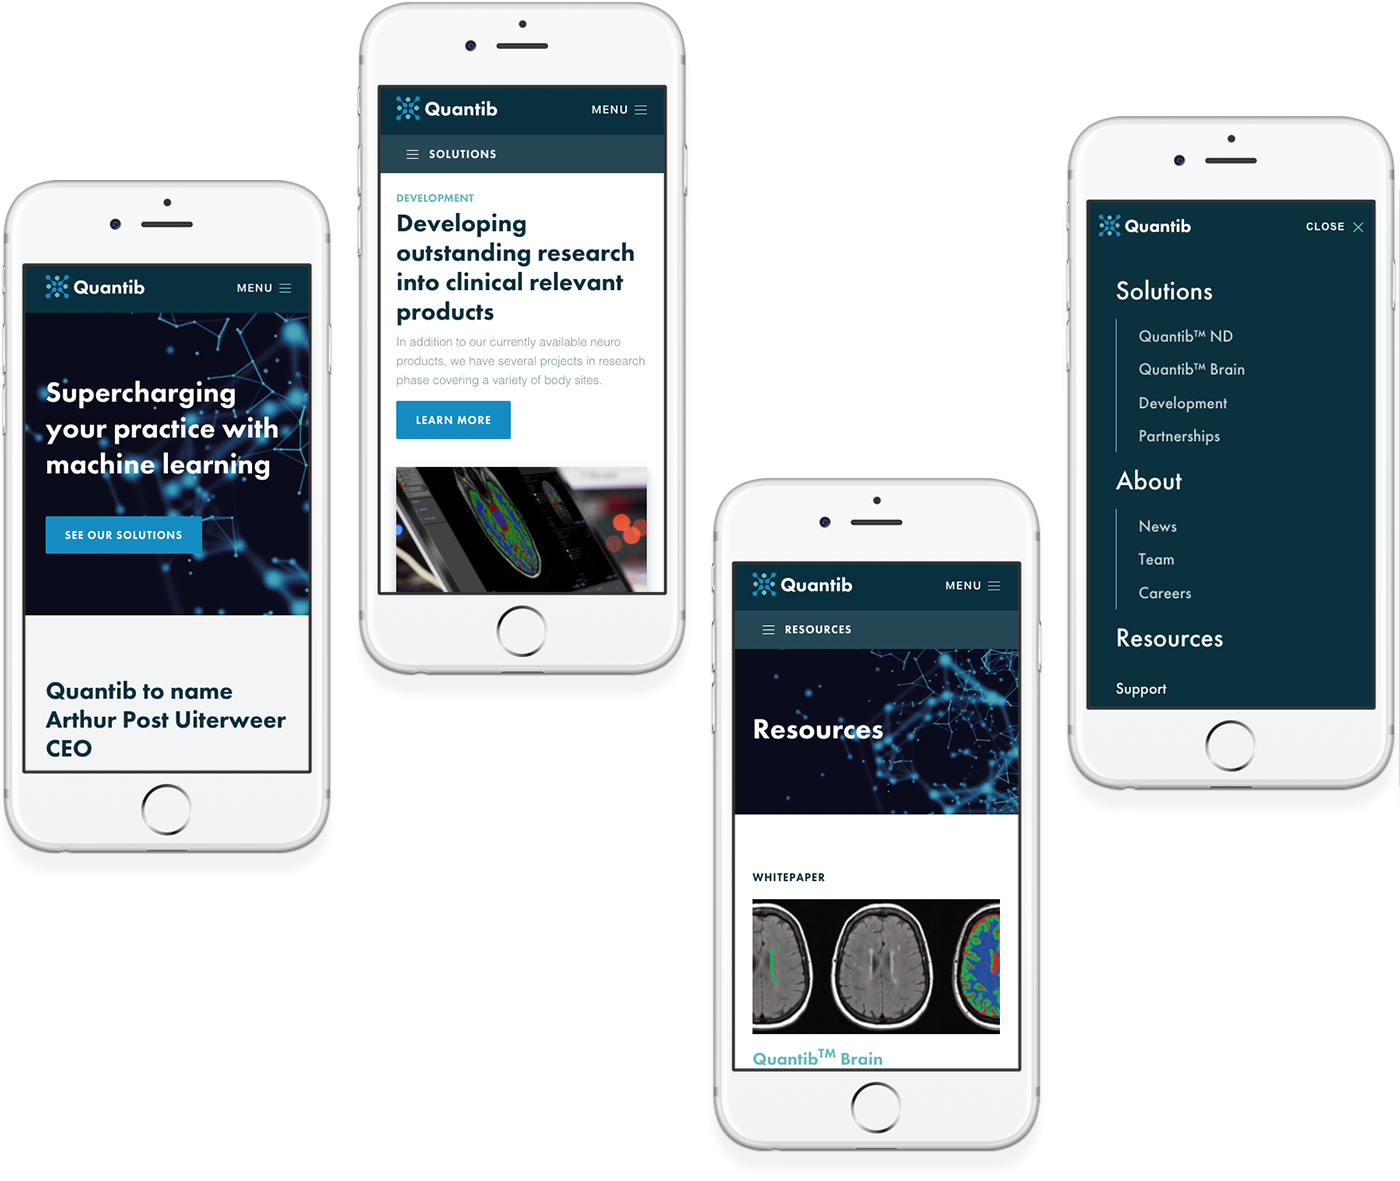 Quantib's responsive website design on four mobile phones